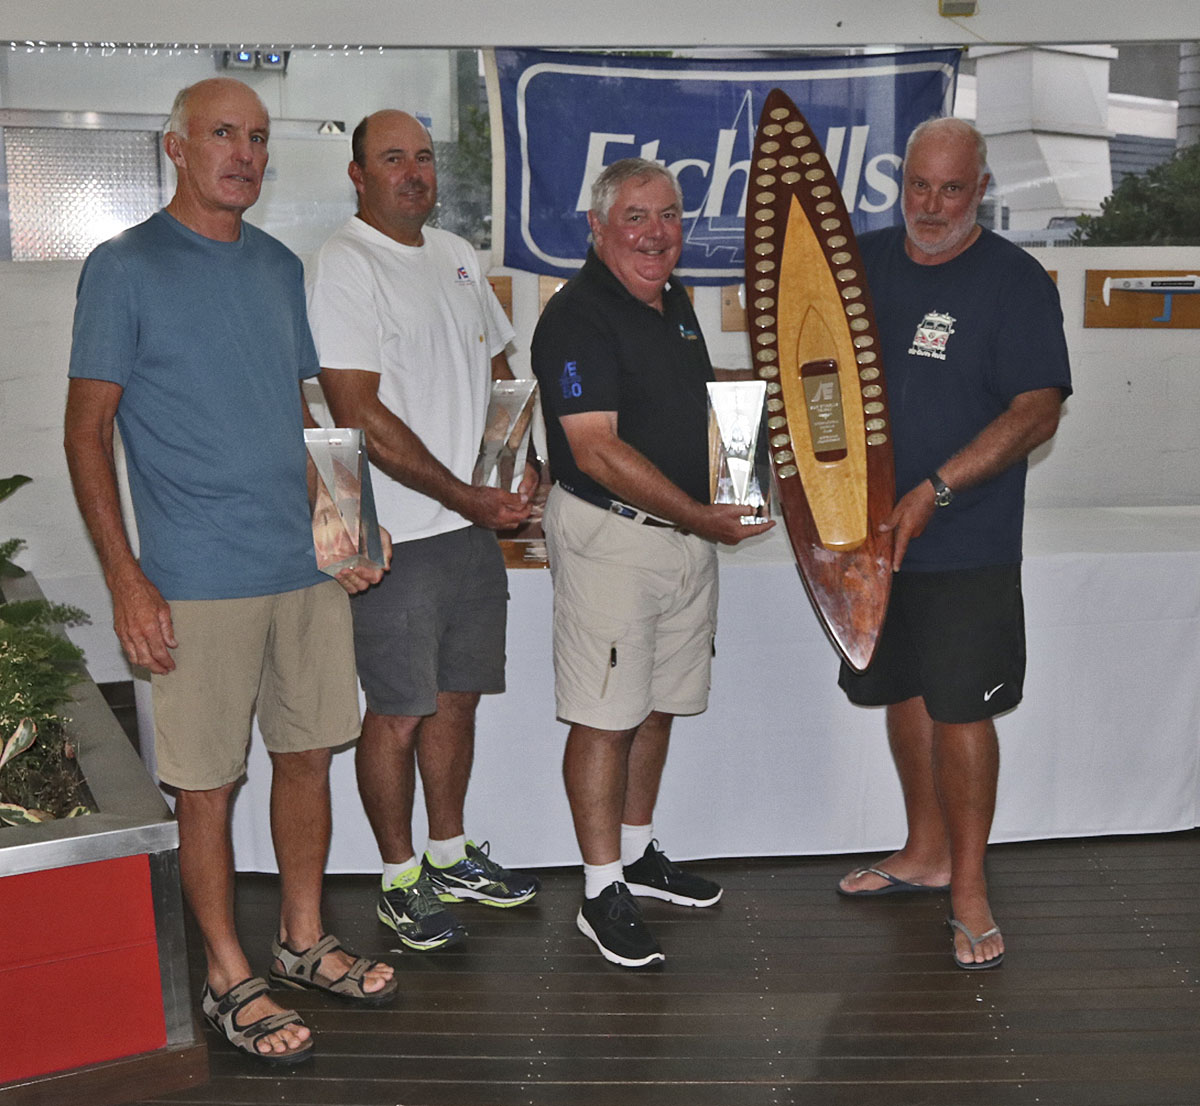 RQYS Commodore presents Iain Murray, Richie Allanson and Colin Beashel with their loot for winning the 2019 Etchells Australian Championship